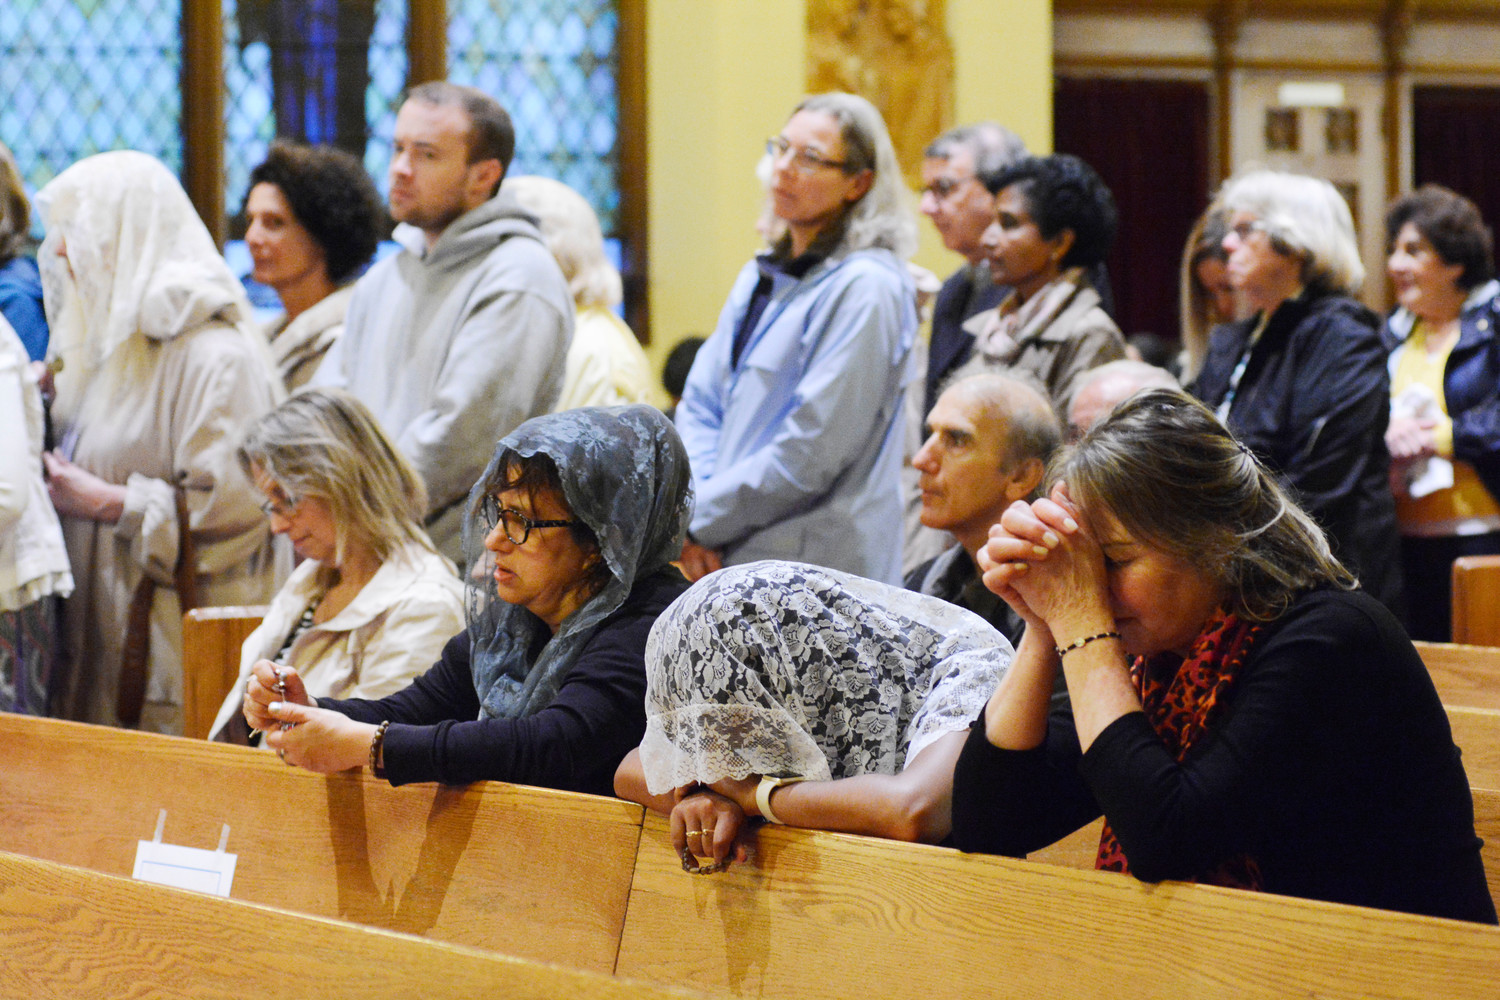 A vigil Mass honoring St. Padre Pio is offered at Immaculate Heart of Mary Church in Scarsdale Oct. 29. It was the final stop of a national tour of the saint's relics, which began in the archdiocese in September.